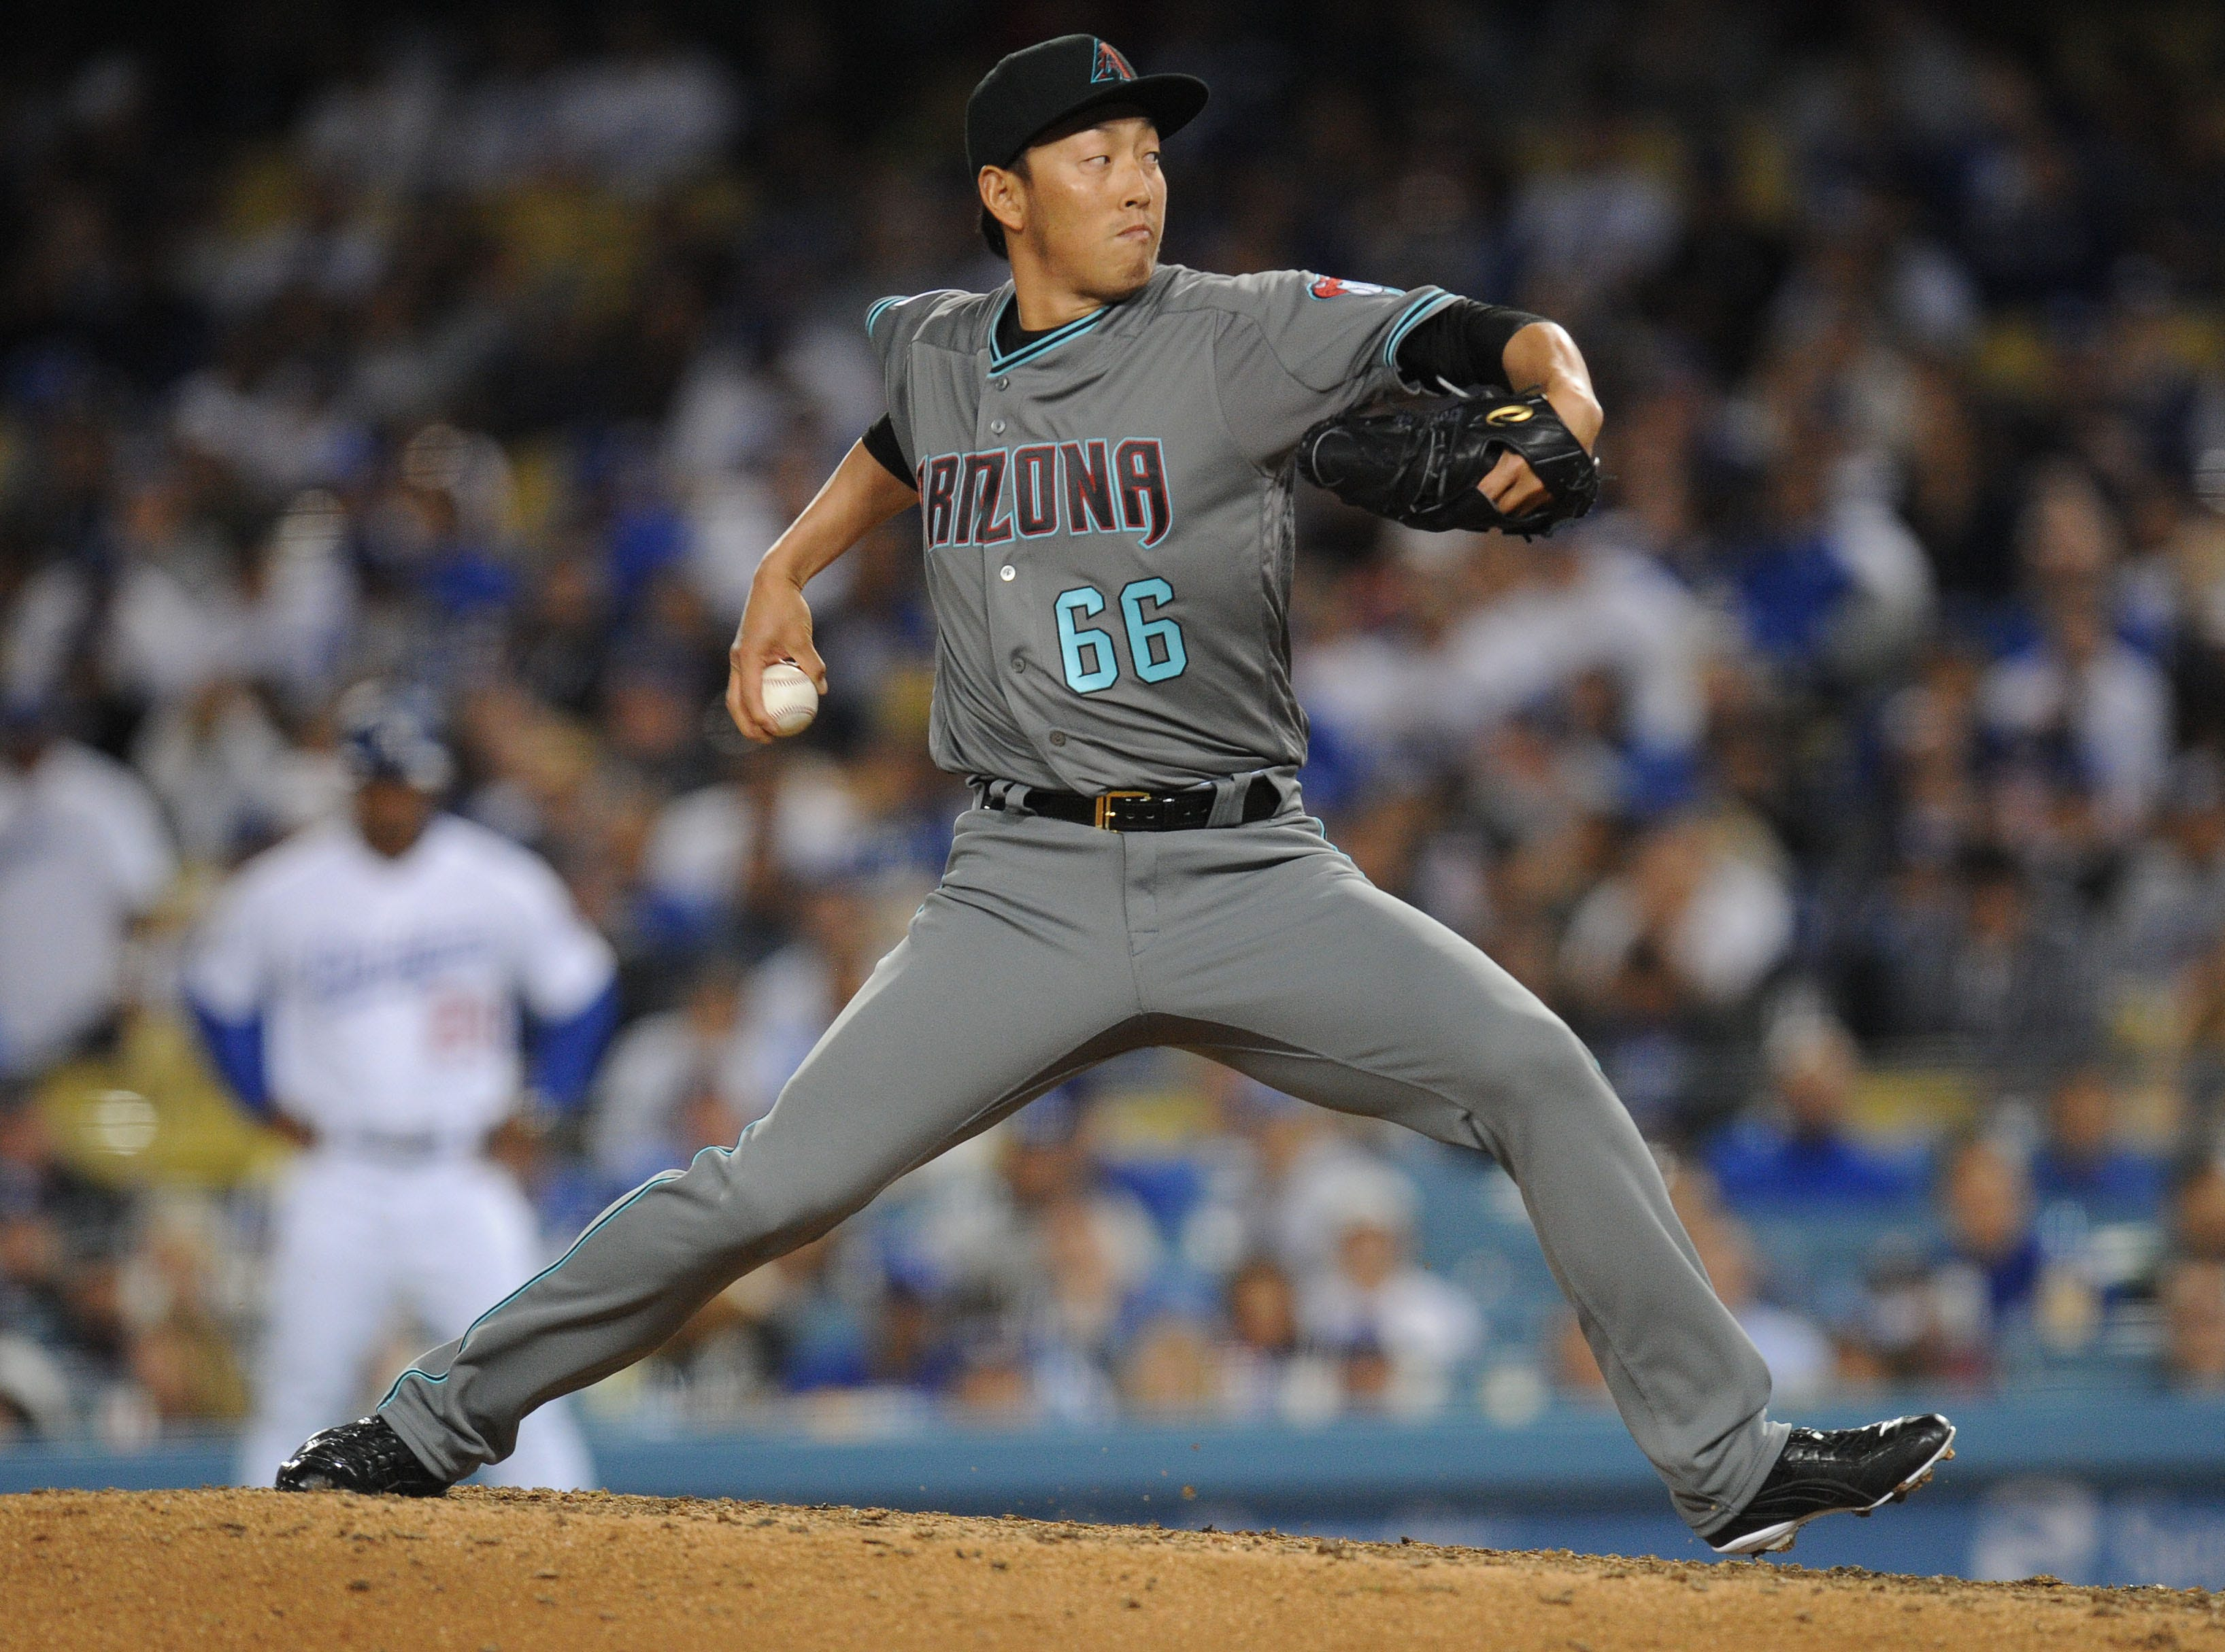 March 29, 2019; Los Angeles, CA, USA; Arizona Diamondbacks relief pitcher Yoshihisa Hirano (66) throws against the Los Angeles Dodgers during the seventh inning at Dodger Stadium. Mandatory Credit: Gary A. Vasquez-USA TODAY Sports